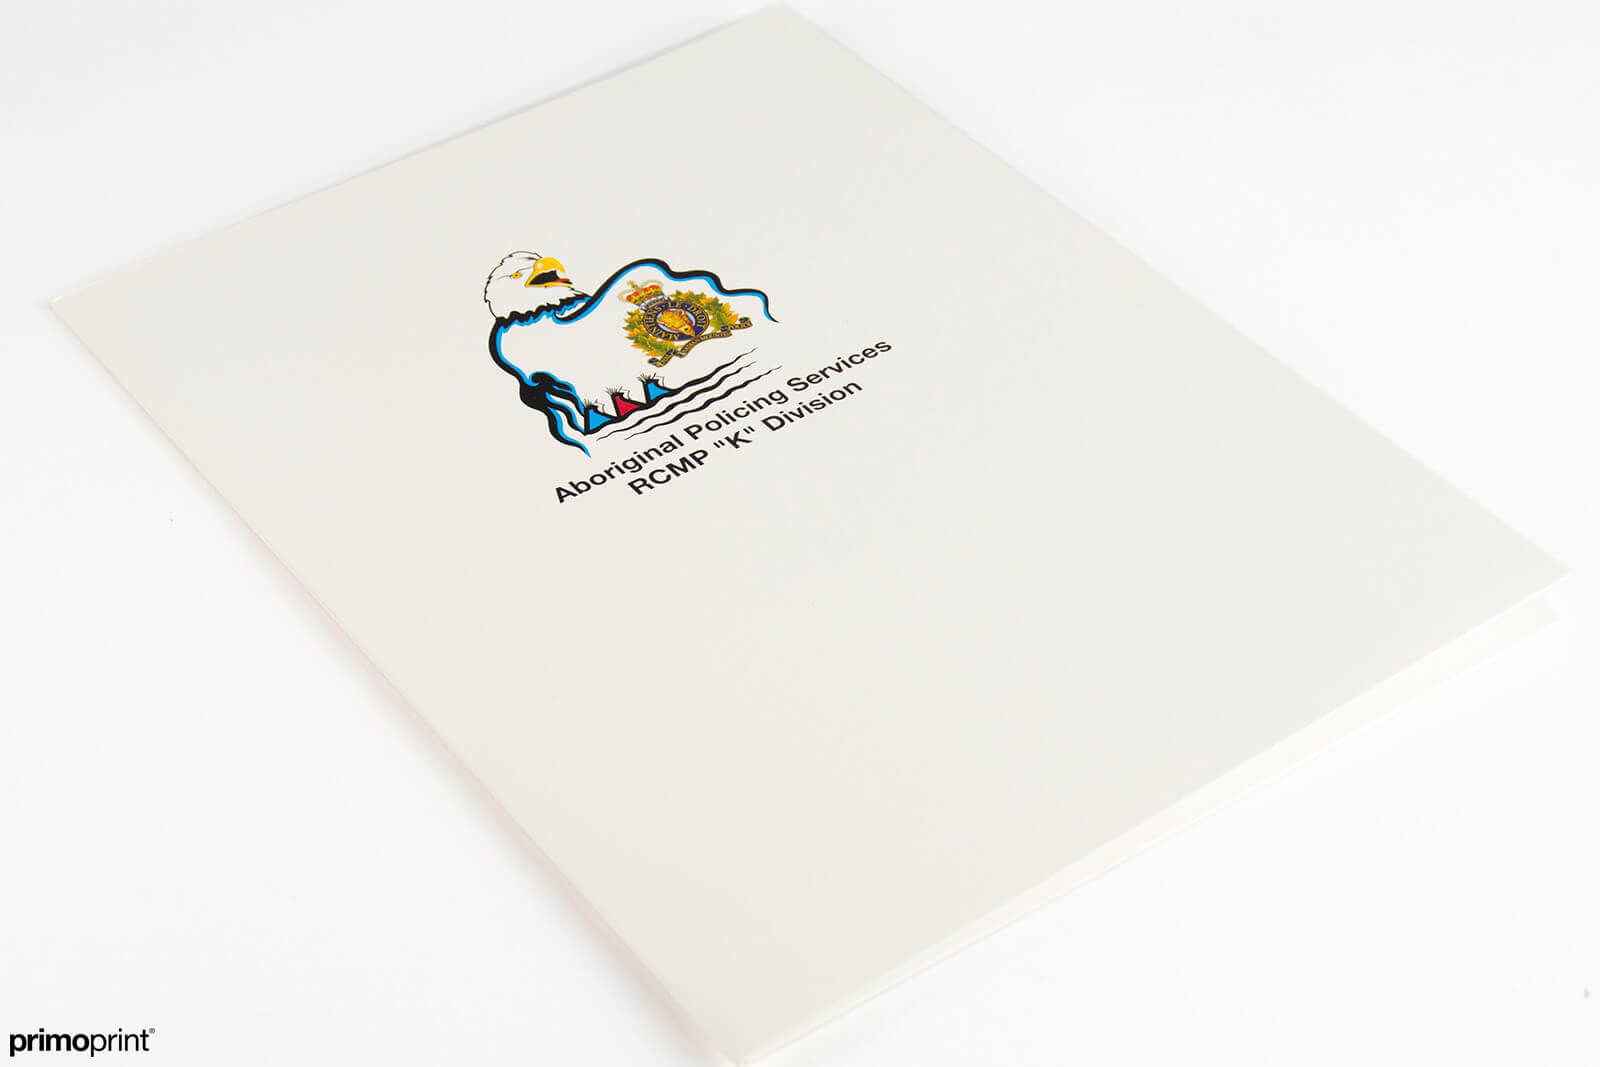 UV Coated Presentation Folder Printed by Primoprint